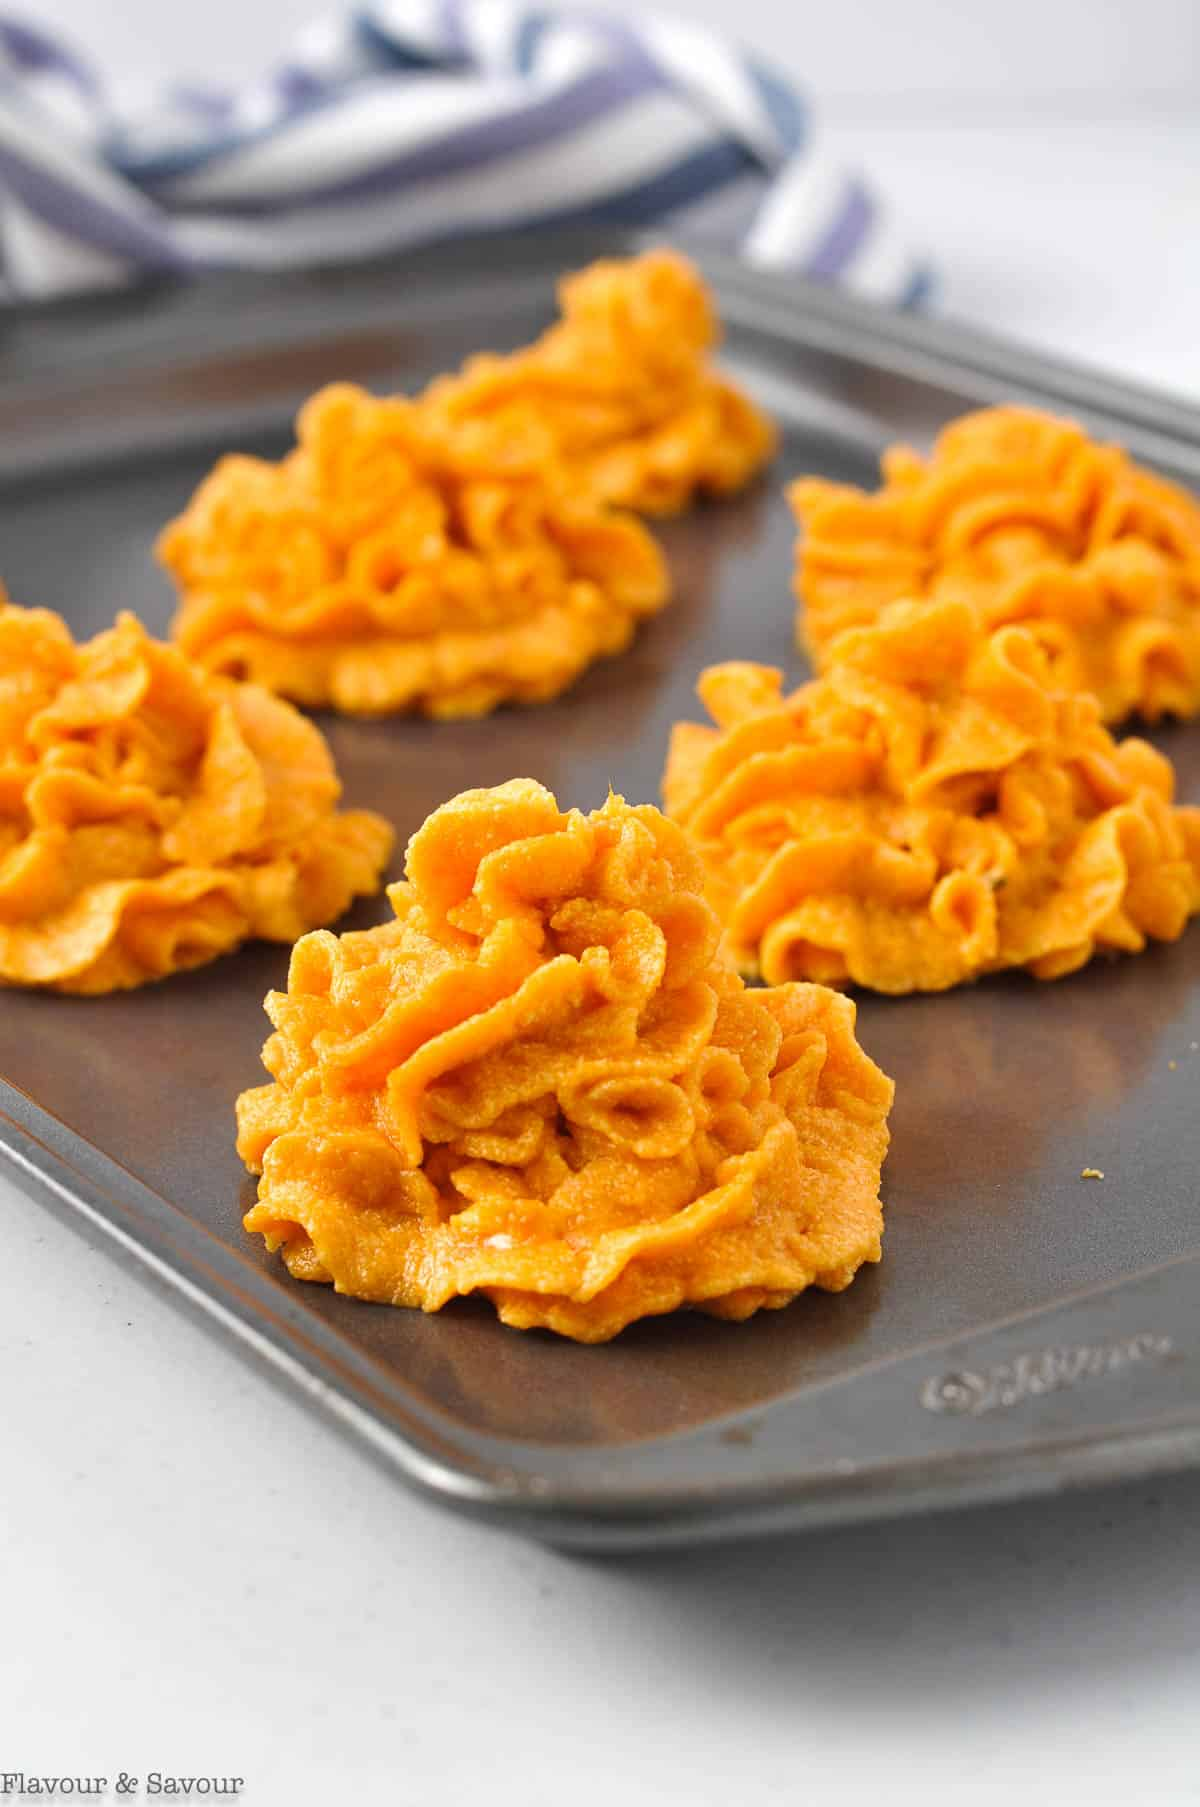 Piped mounds of sweet potatoes on a baking sheet